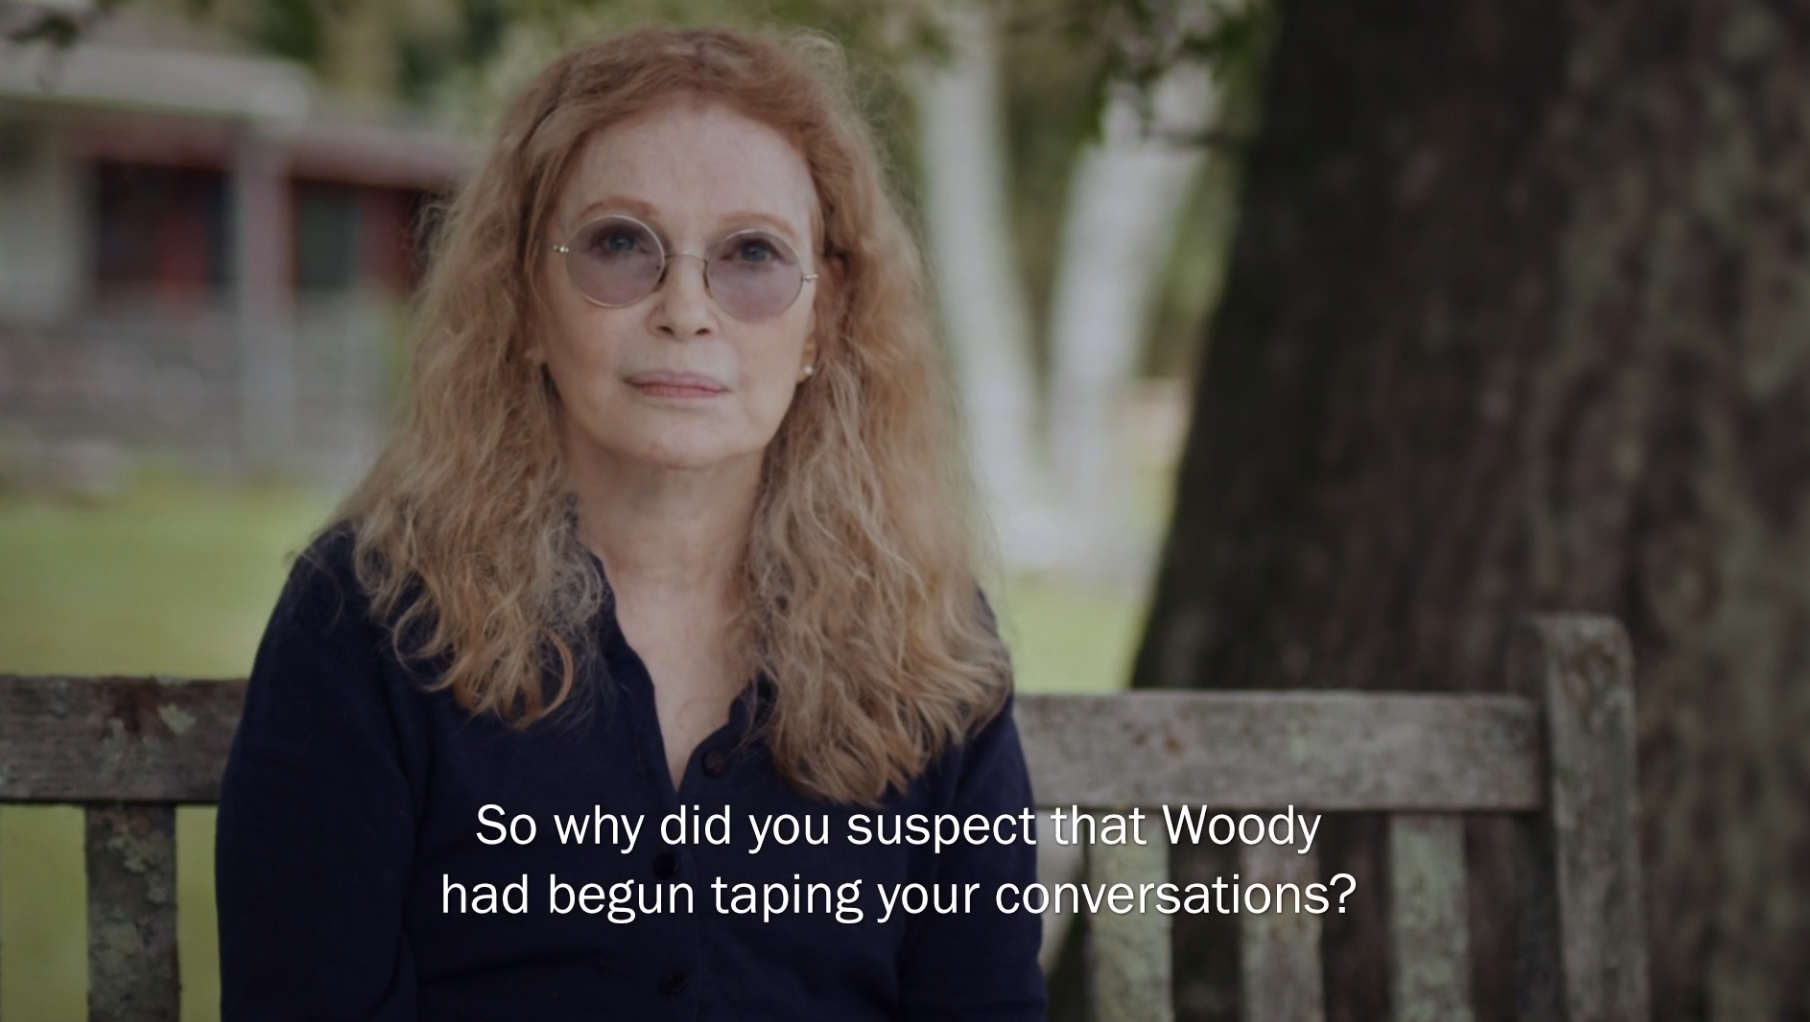 Mia Farrow talking about Woody Allen's inappropriate relationship with Soon-Yi